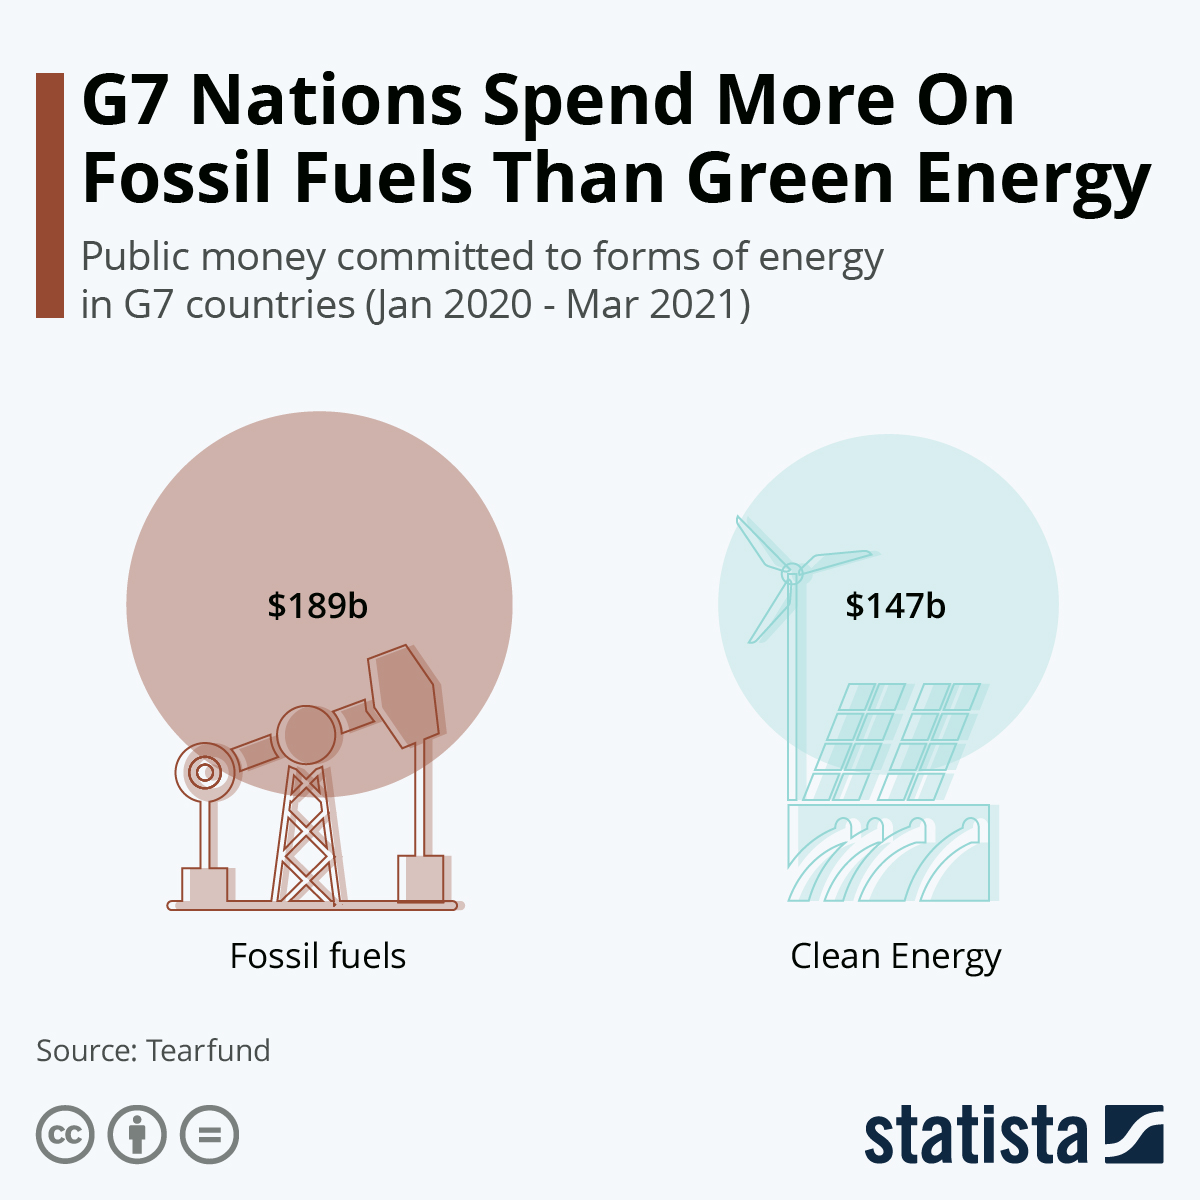 So far, G7 spend more on fossil fuels than green energy